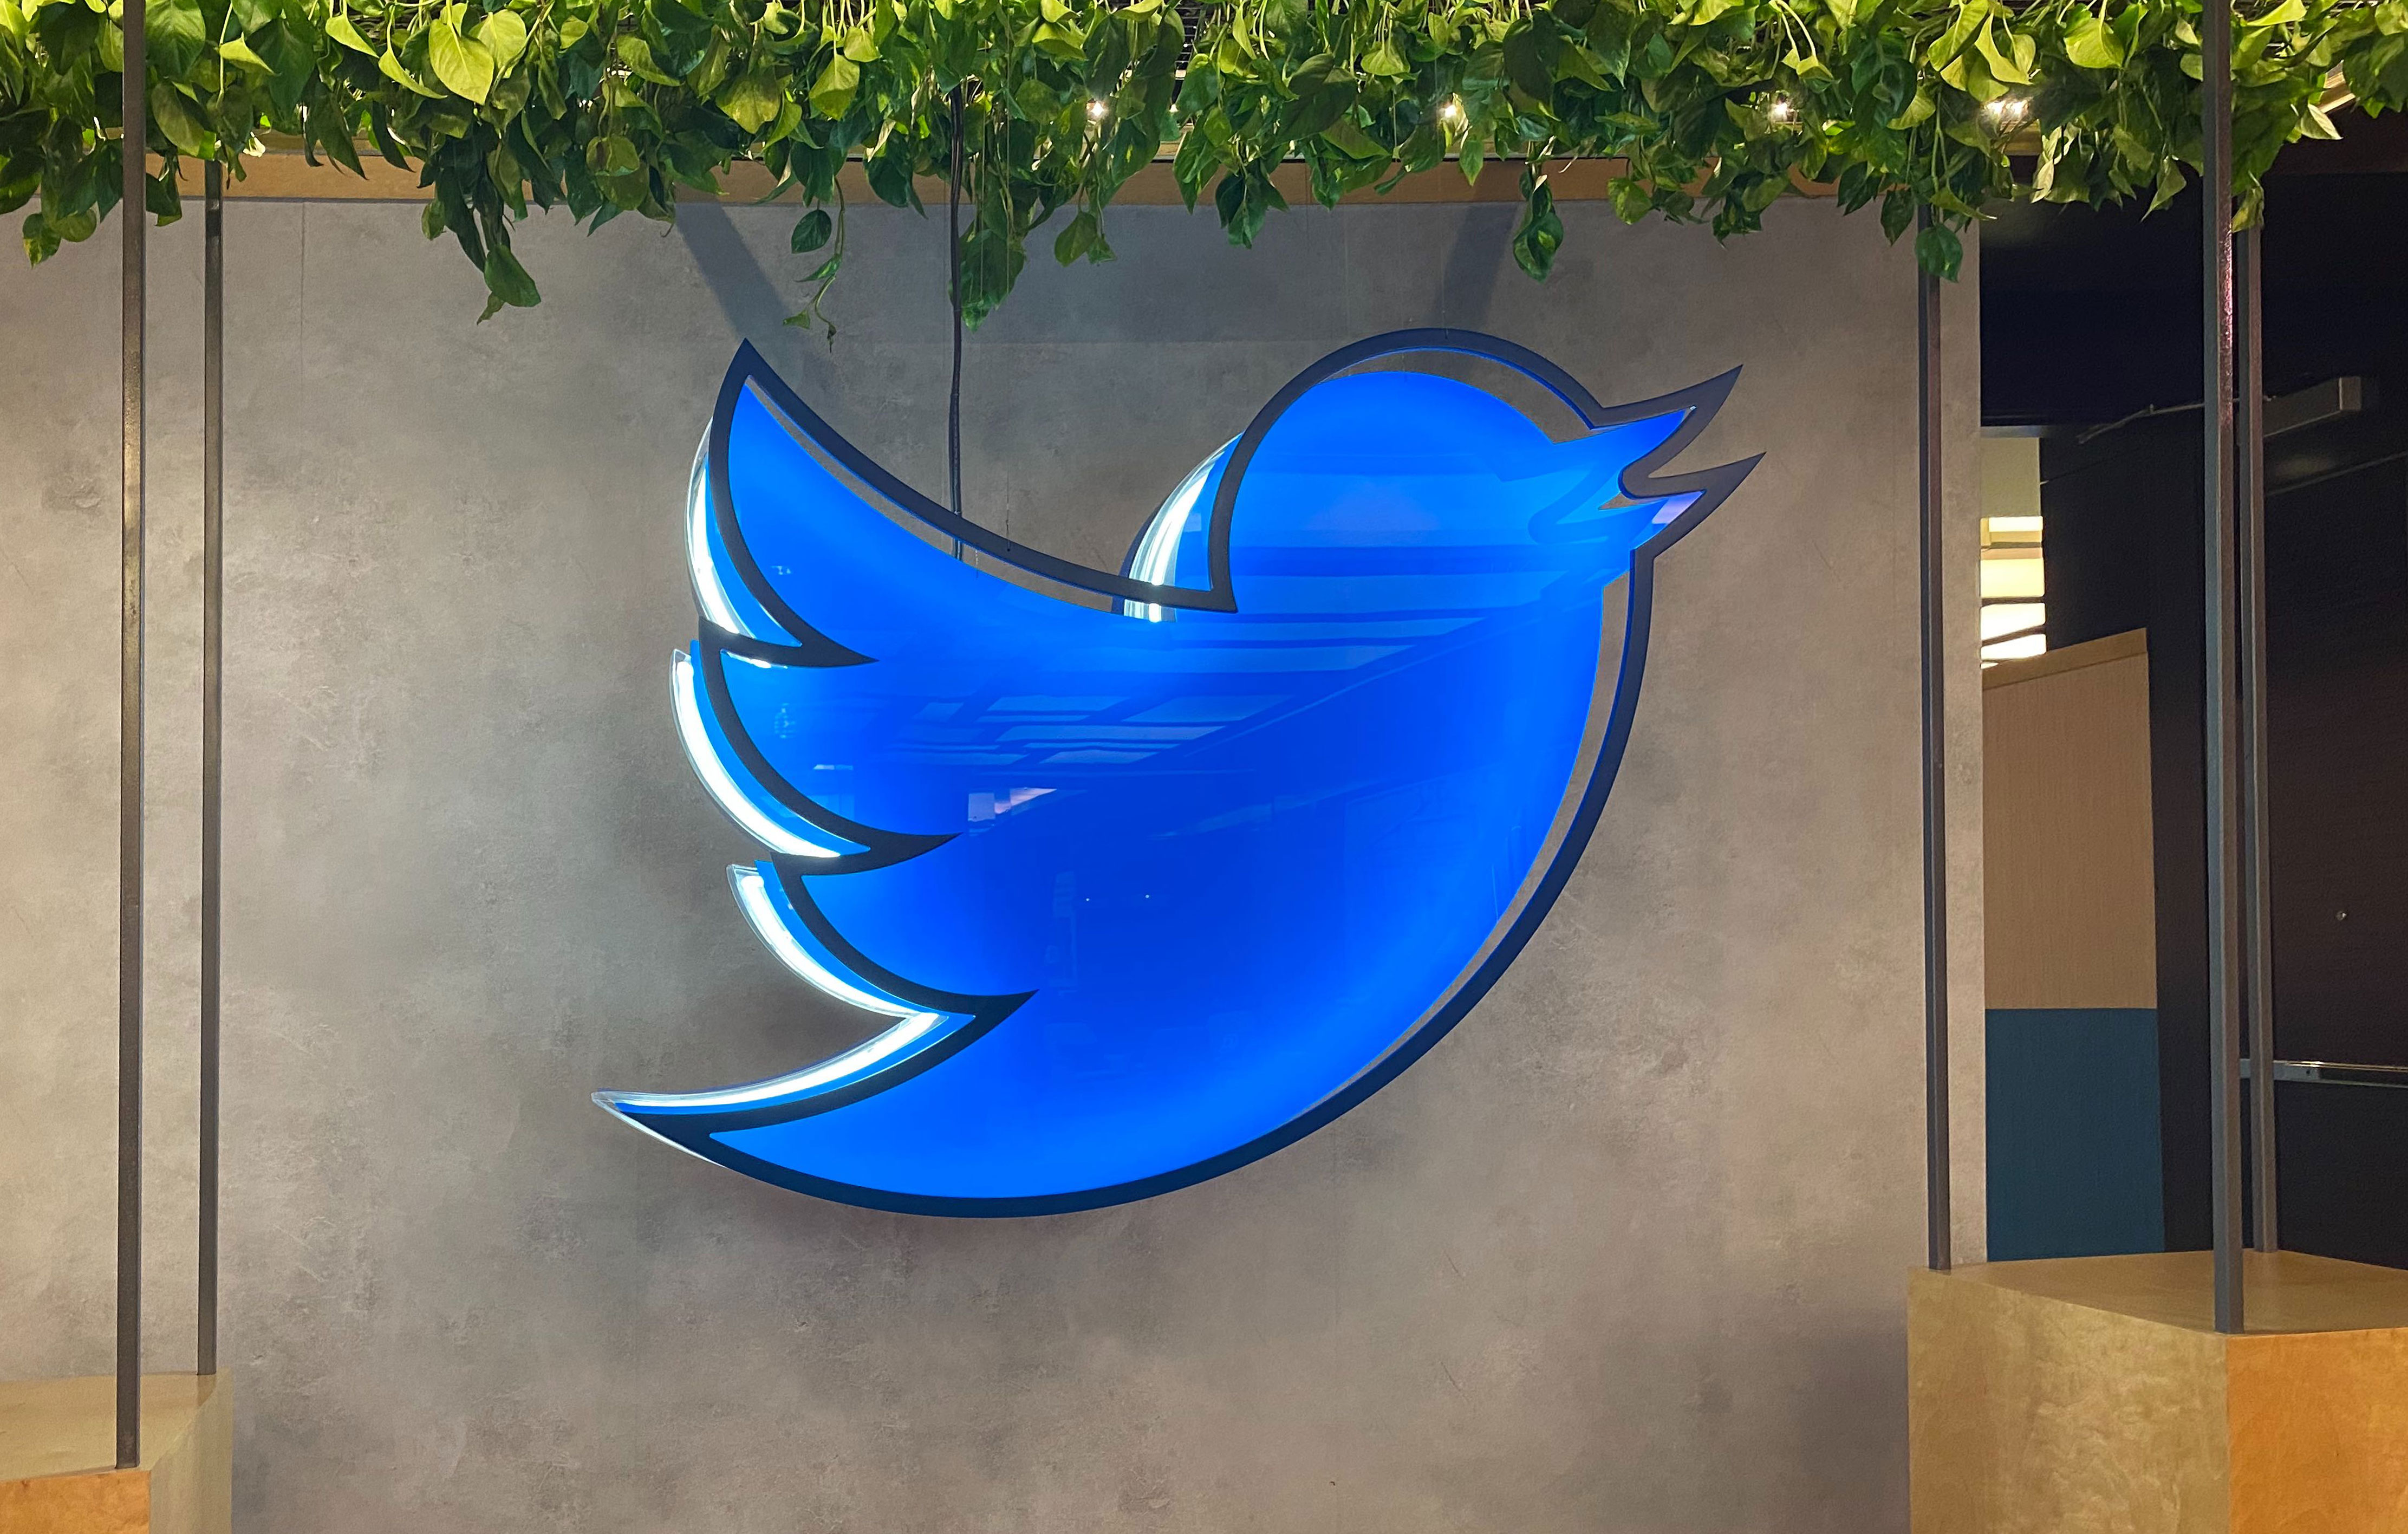 Twitter Reports 1 01b In Q4 Revenue With 152m Monetizable Daily